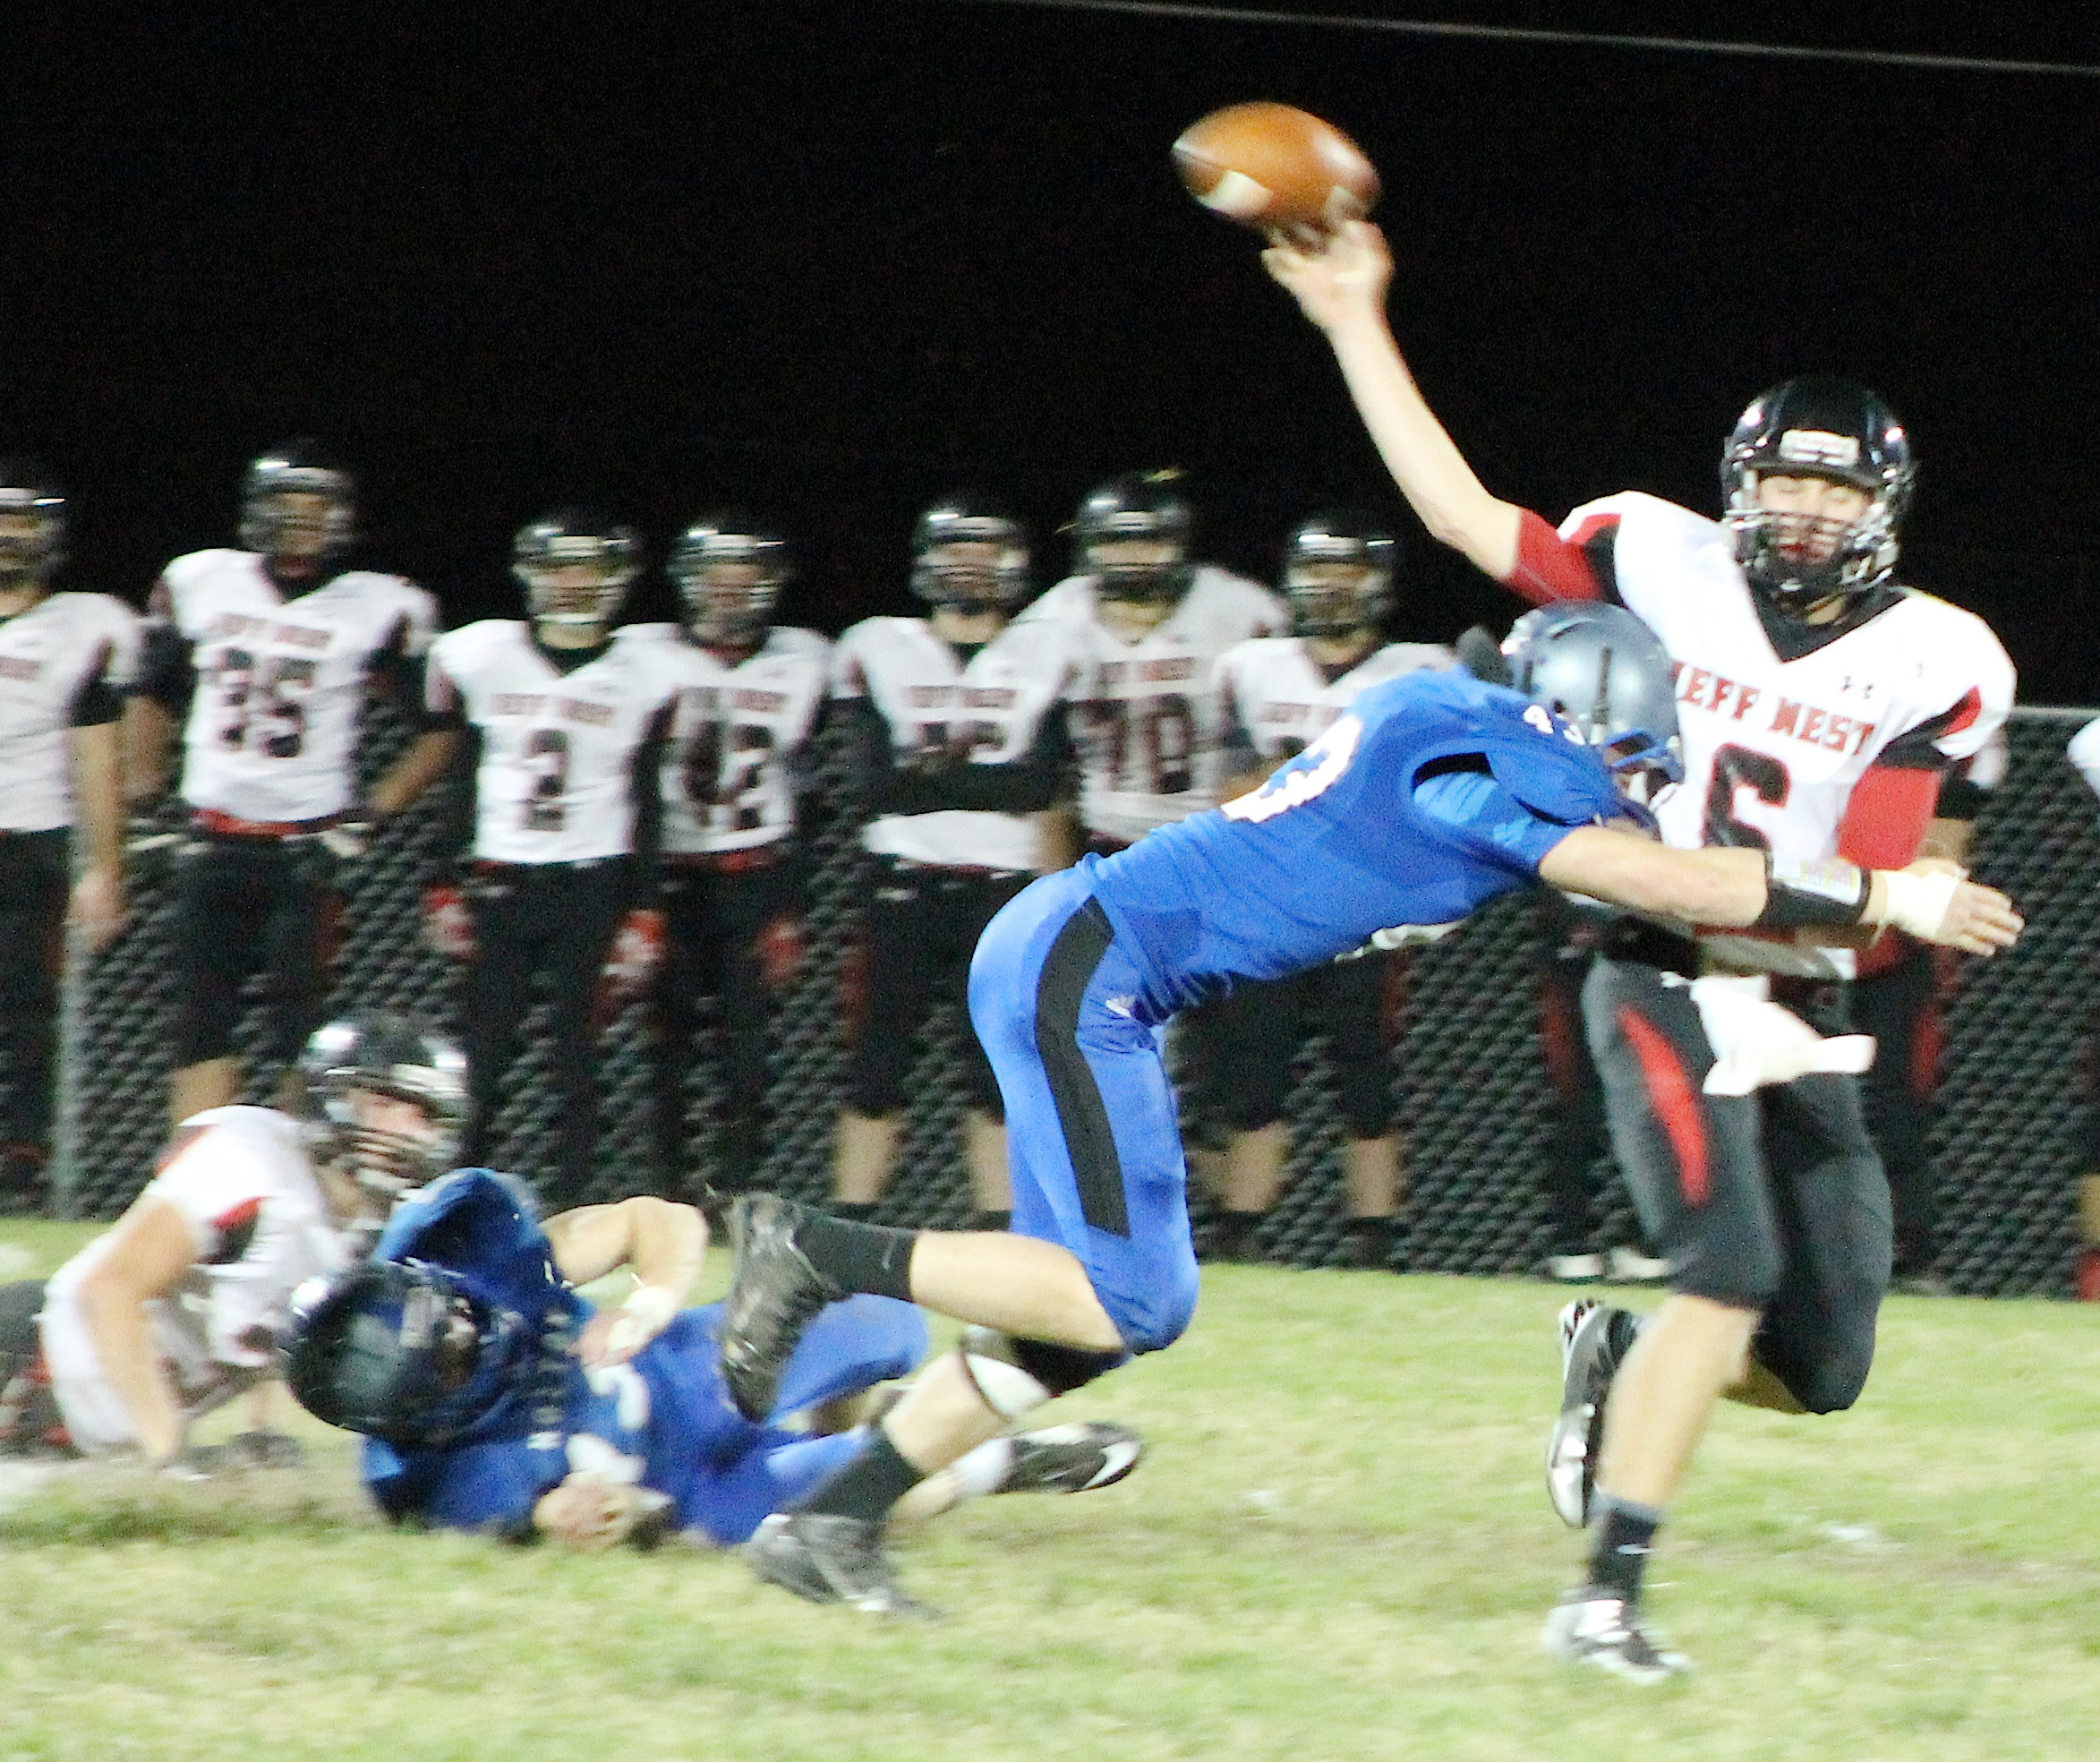 Levi Martin (middle) pressures Jeff West quarterback Jacob Dickey on a crucial play late in the third quarter.